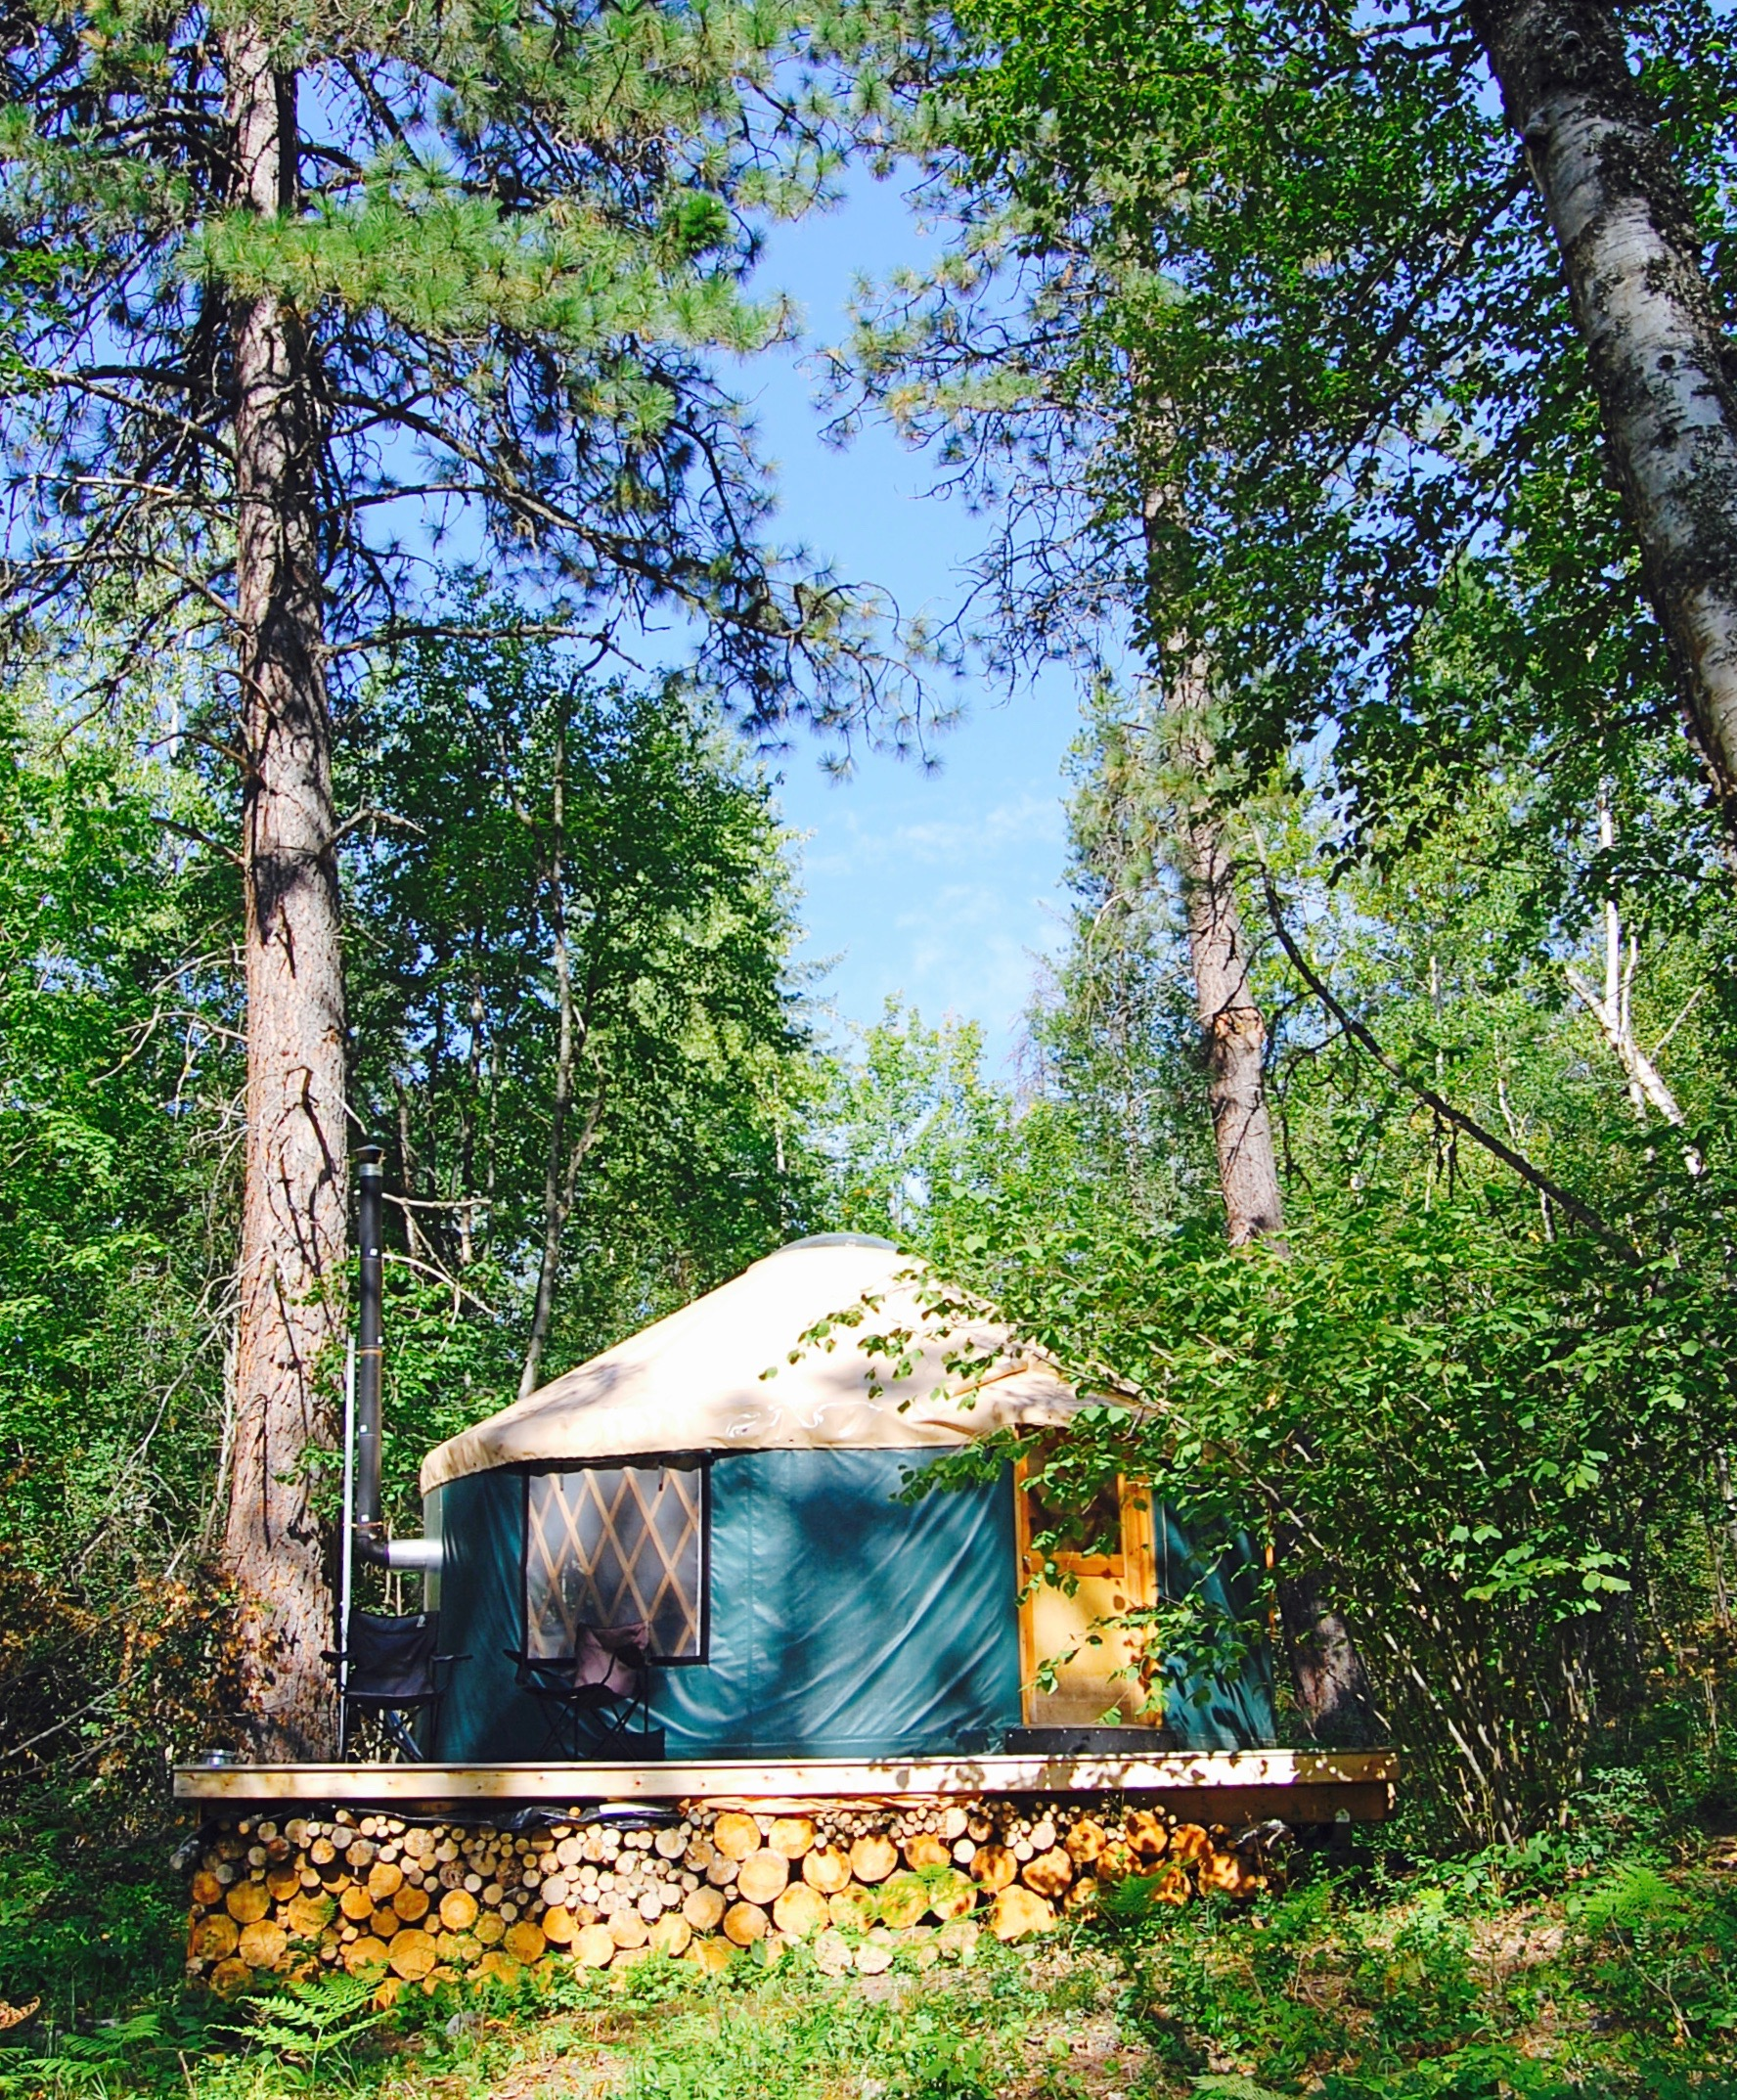 The Yurt at Hidden Creek